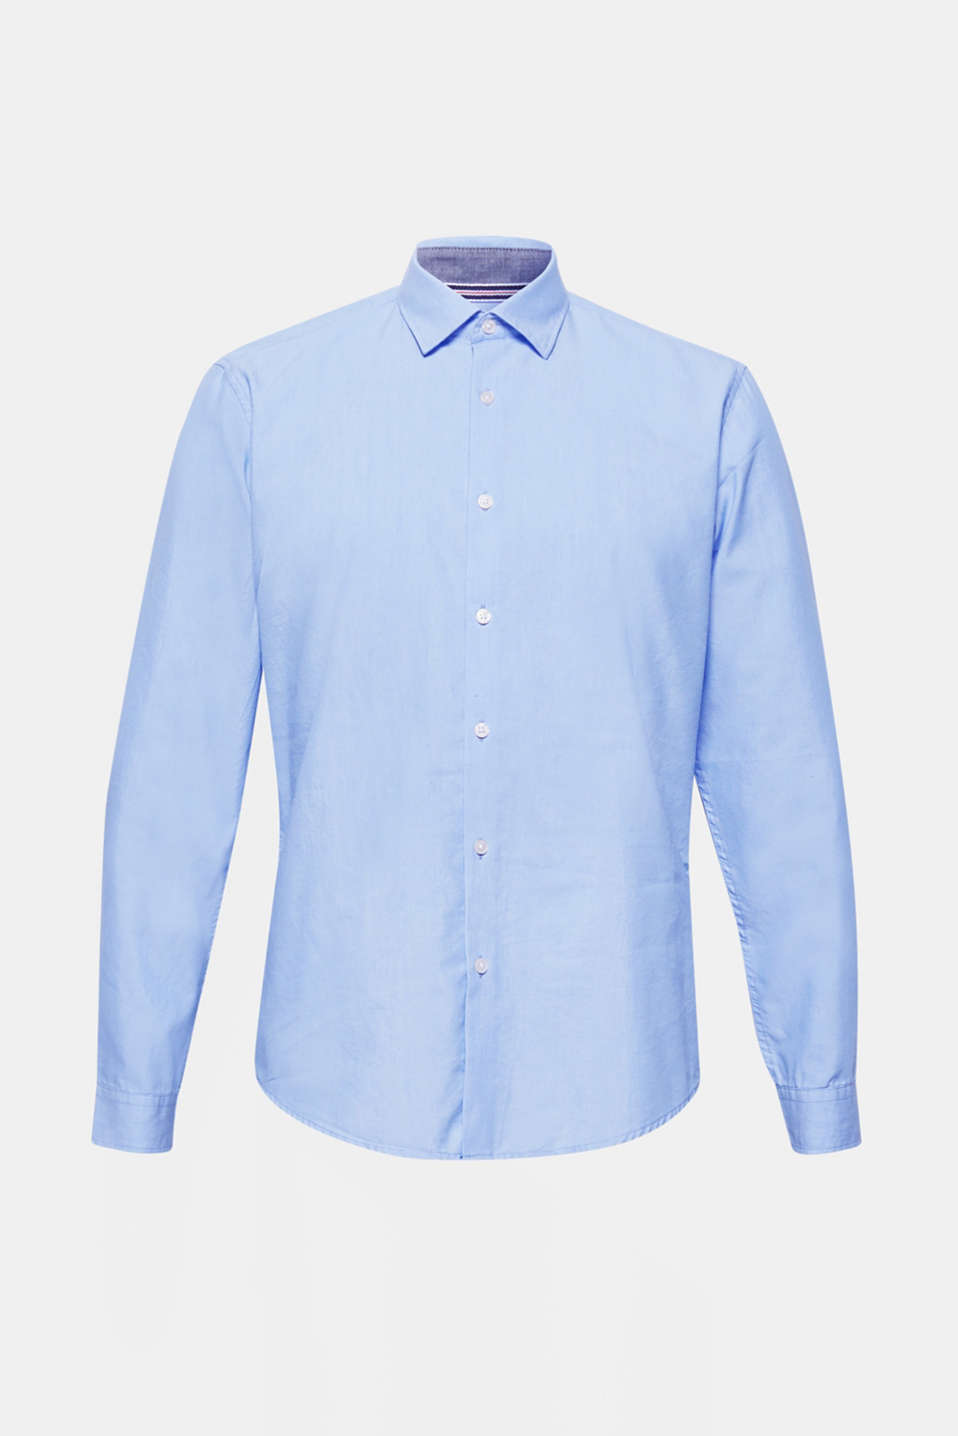 Shirts woven Slim fit, LIGHT BLUE, detail image number 6